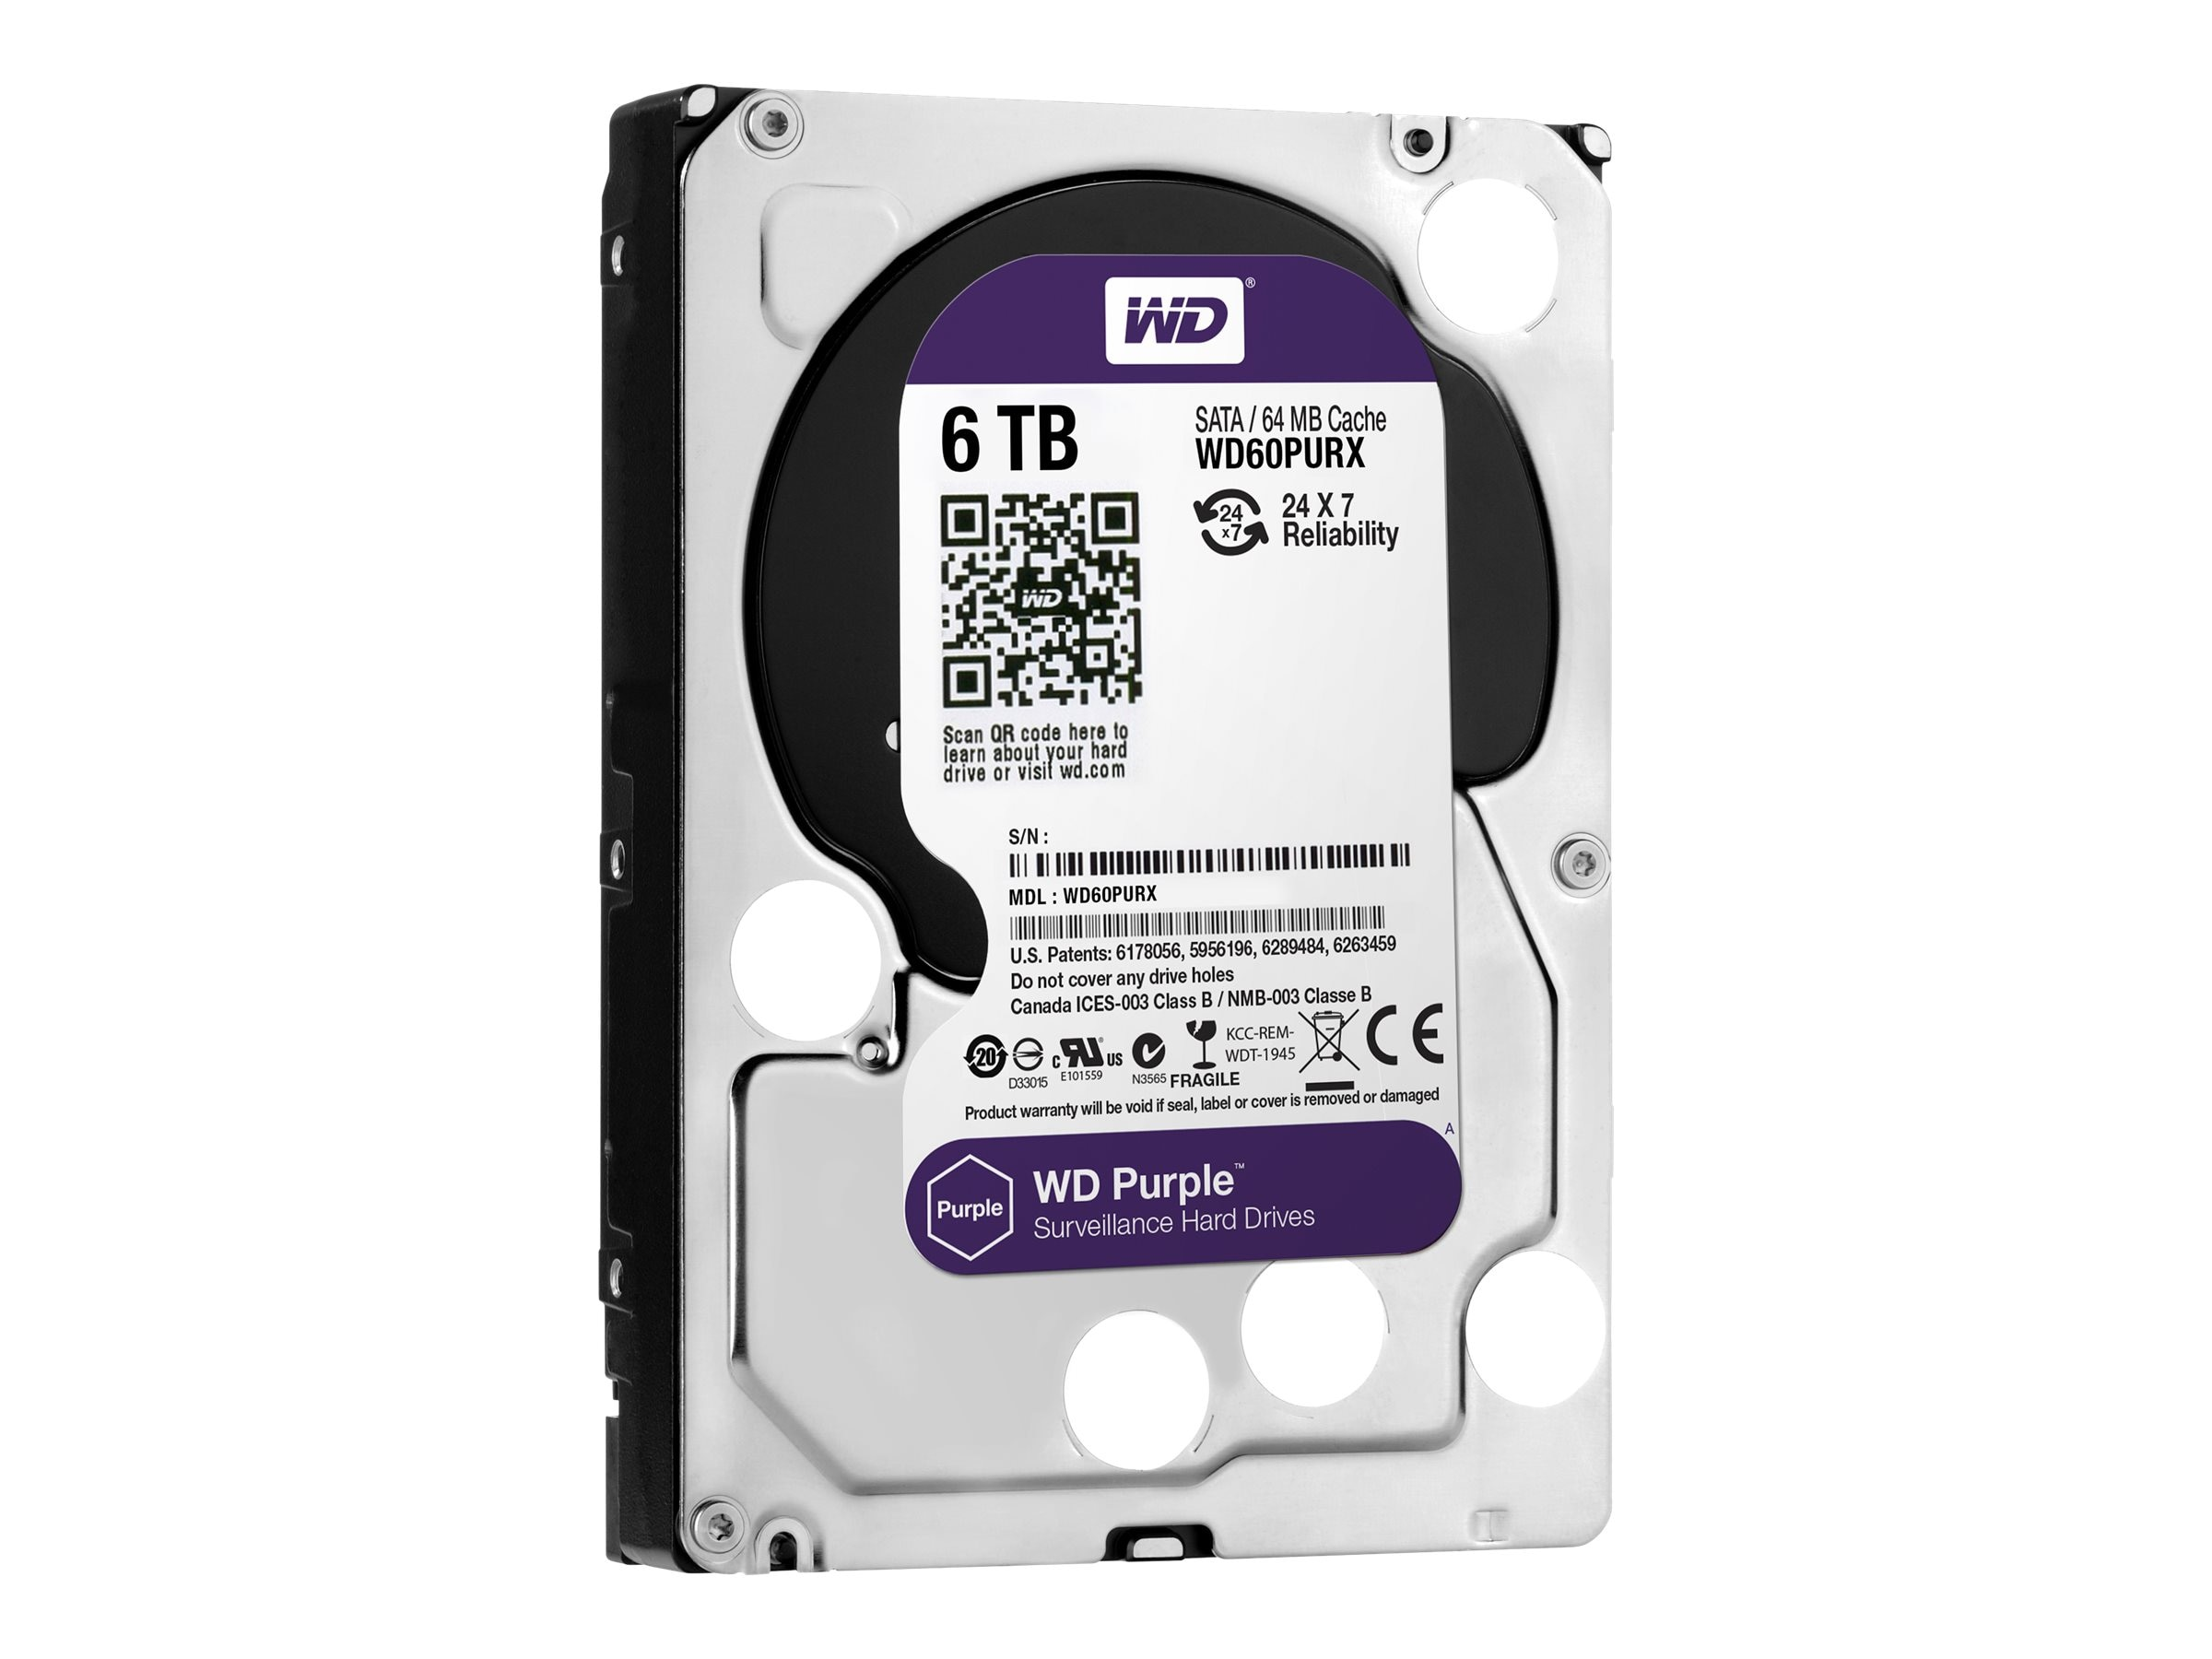 WD 6TB WD Purple SATA 6Gb s 3.5 Internal Hard Drive - 64MB Cache, WD60PURX